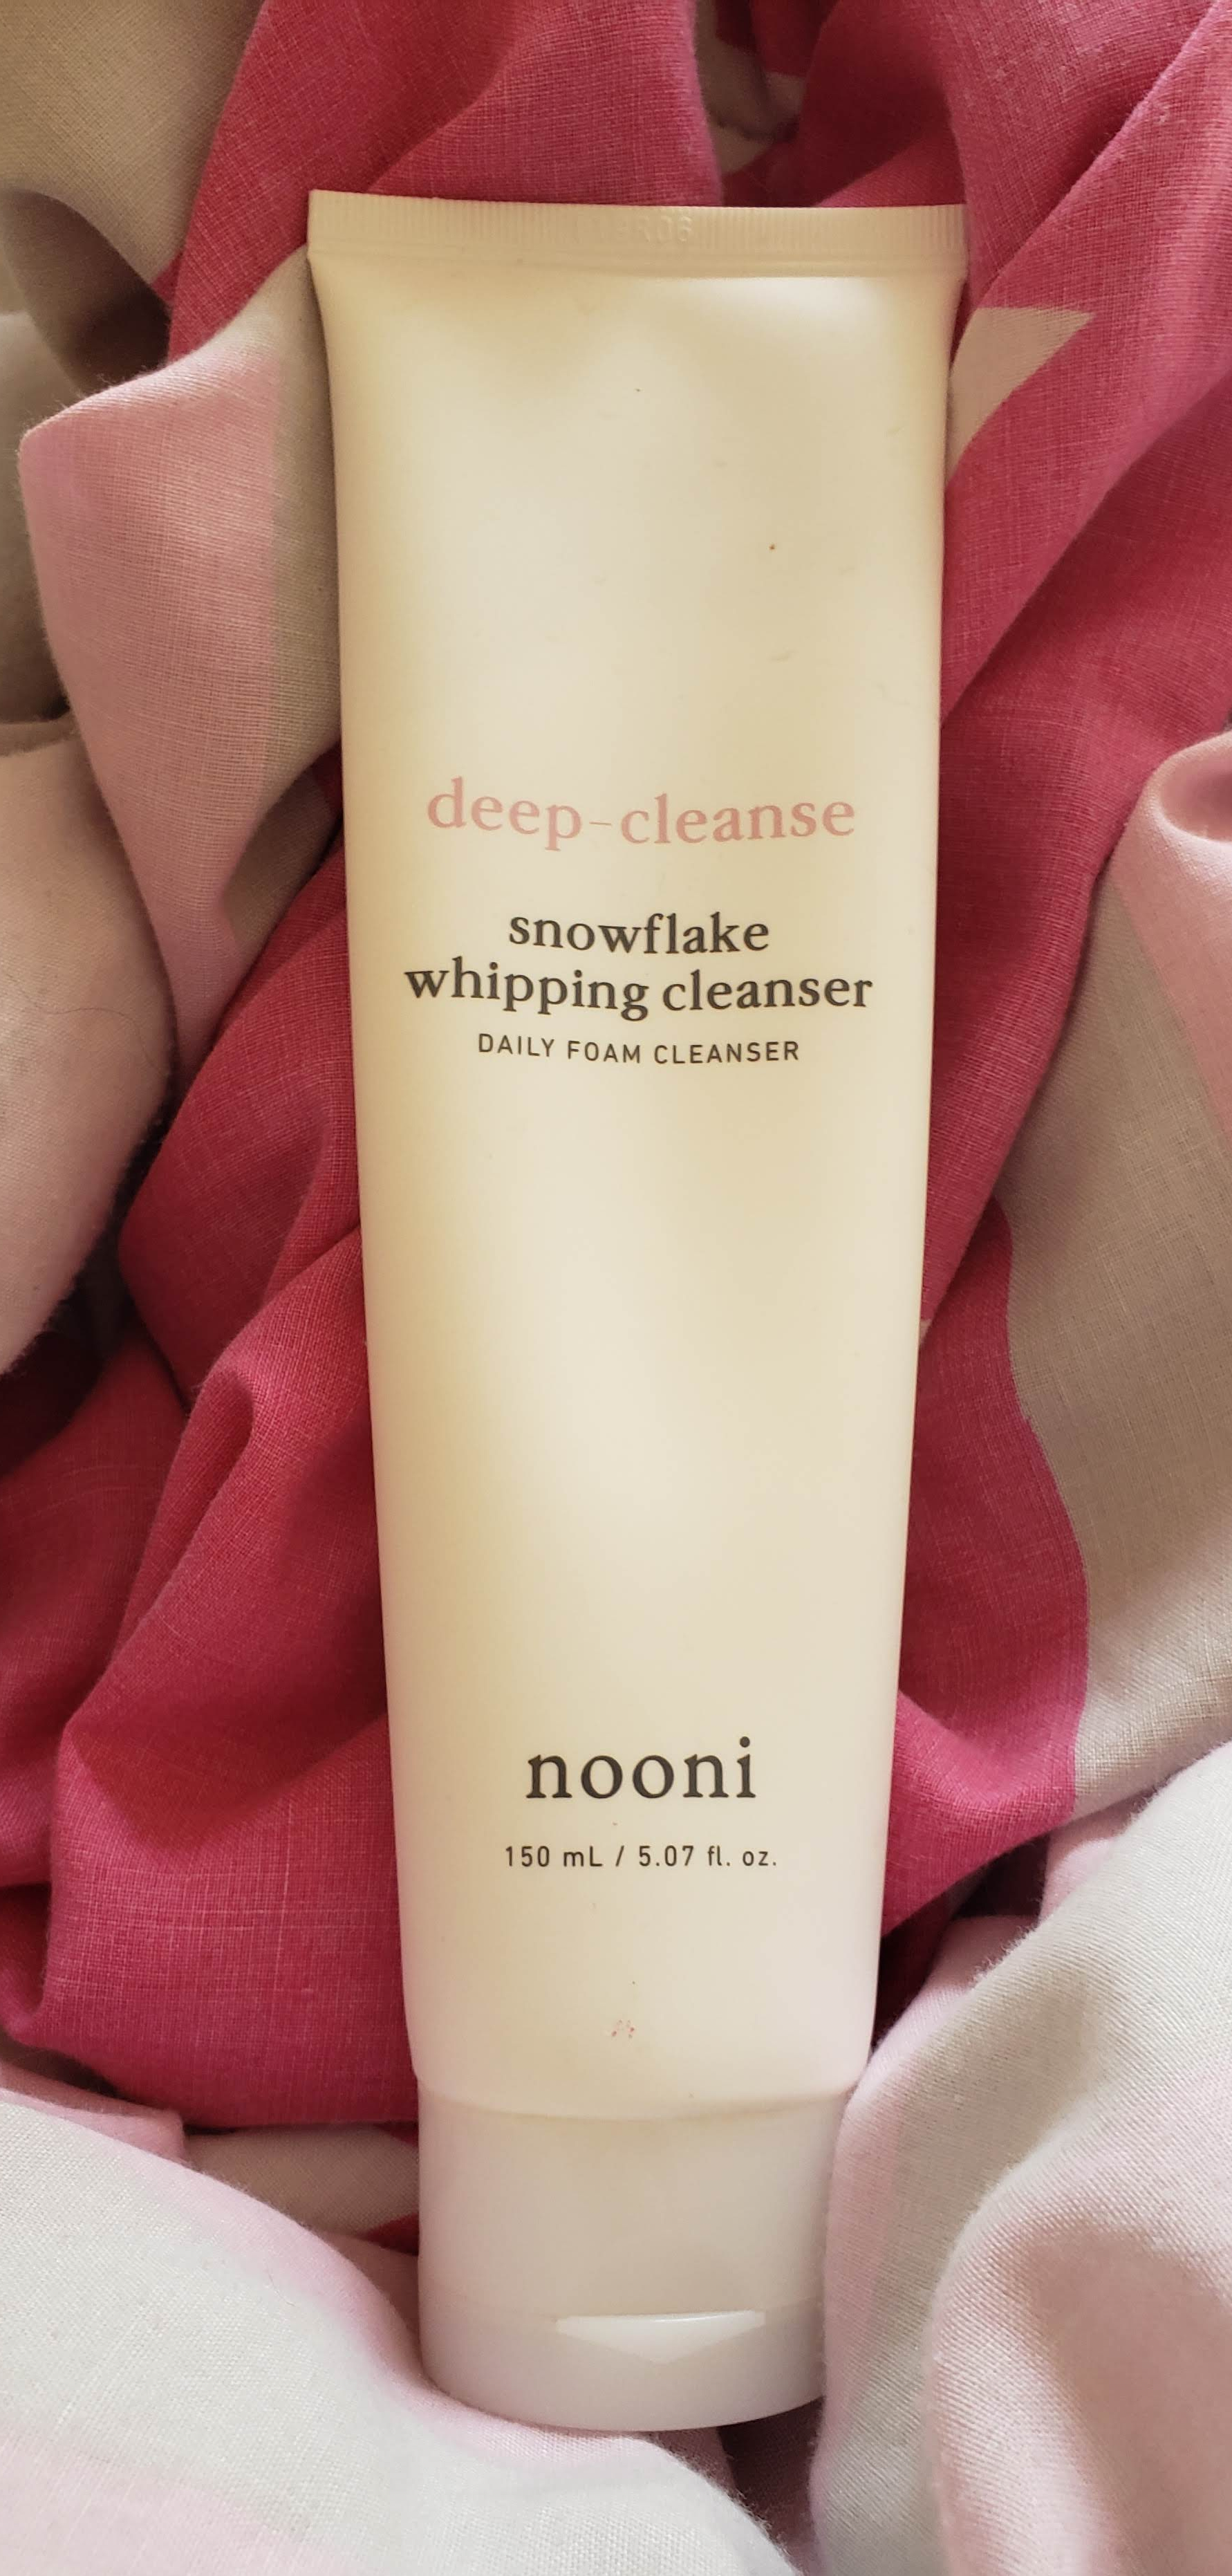 This is what the snowflake whipping cleanser looks like. It's very simple in white, with text to label exactly what the product is.